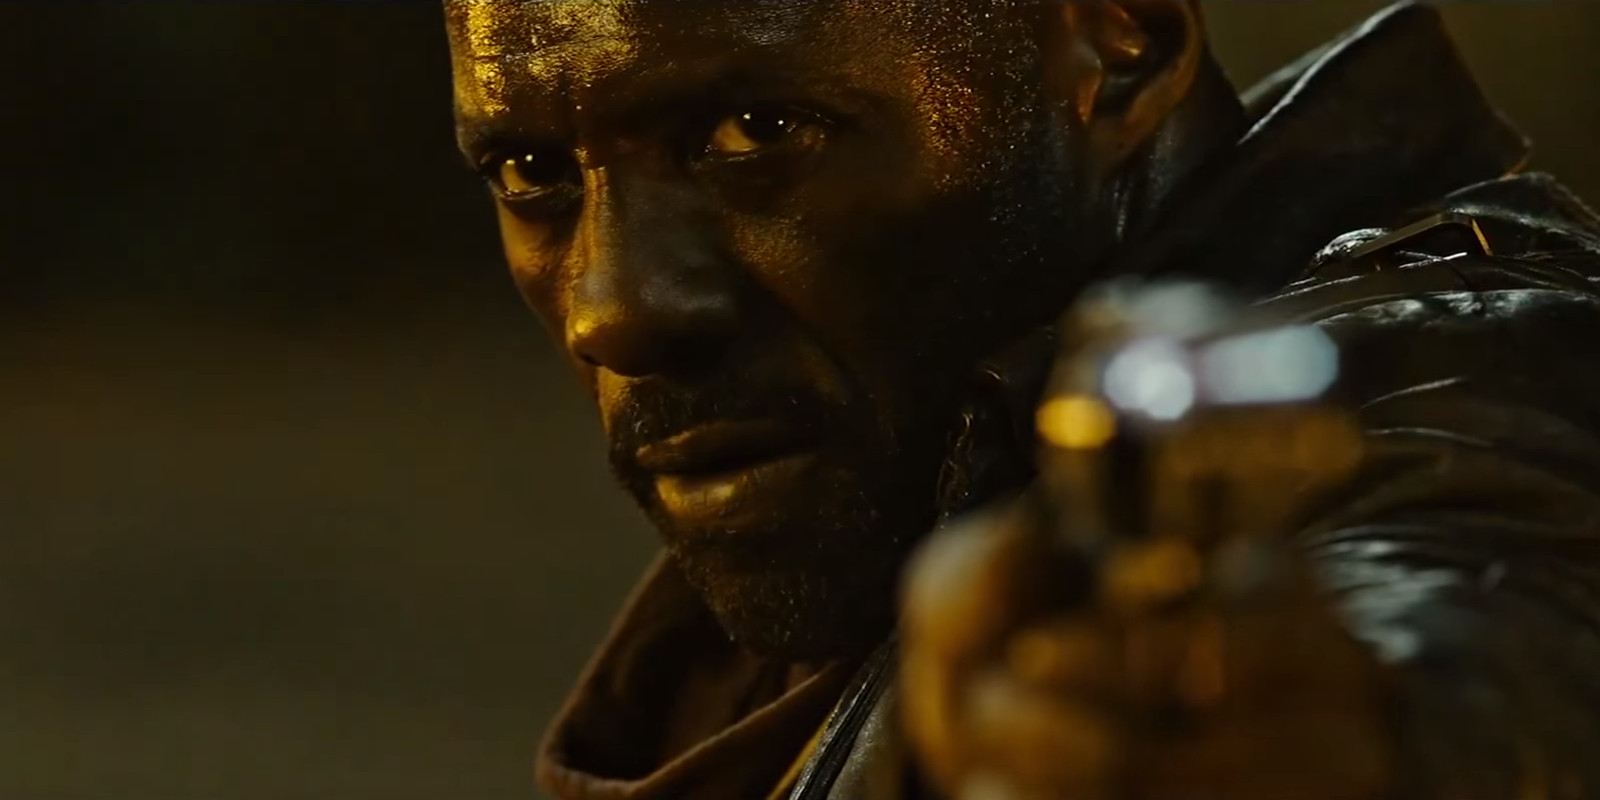 Idris Elba as The Gunslinger, The Dark Tower